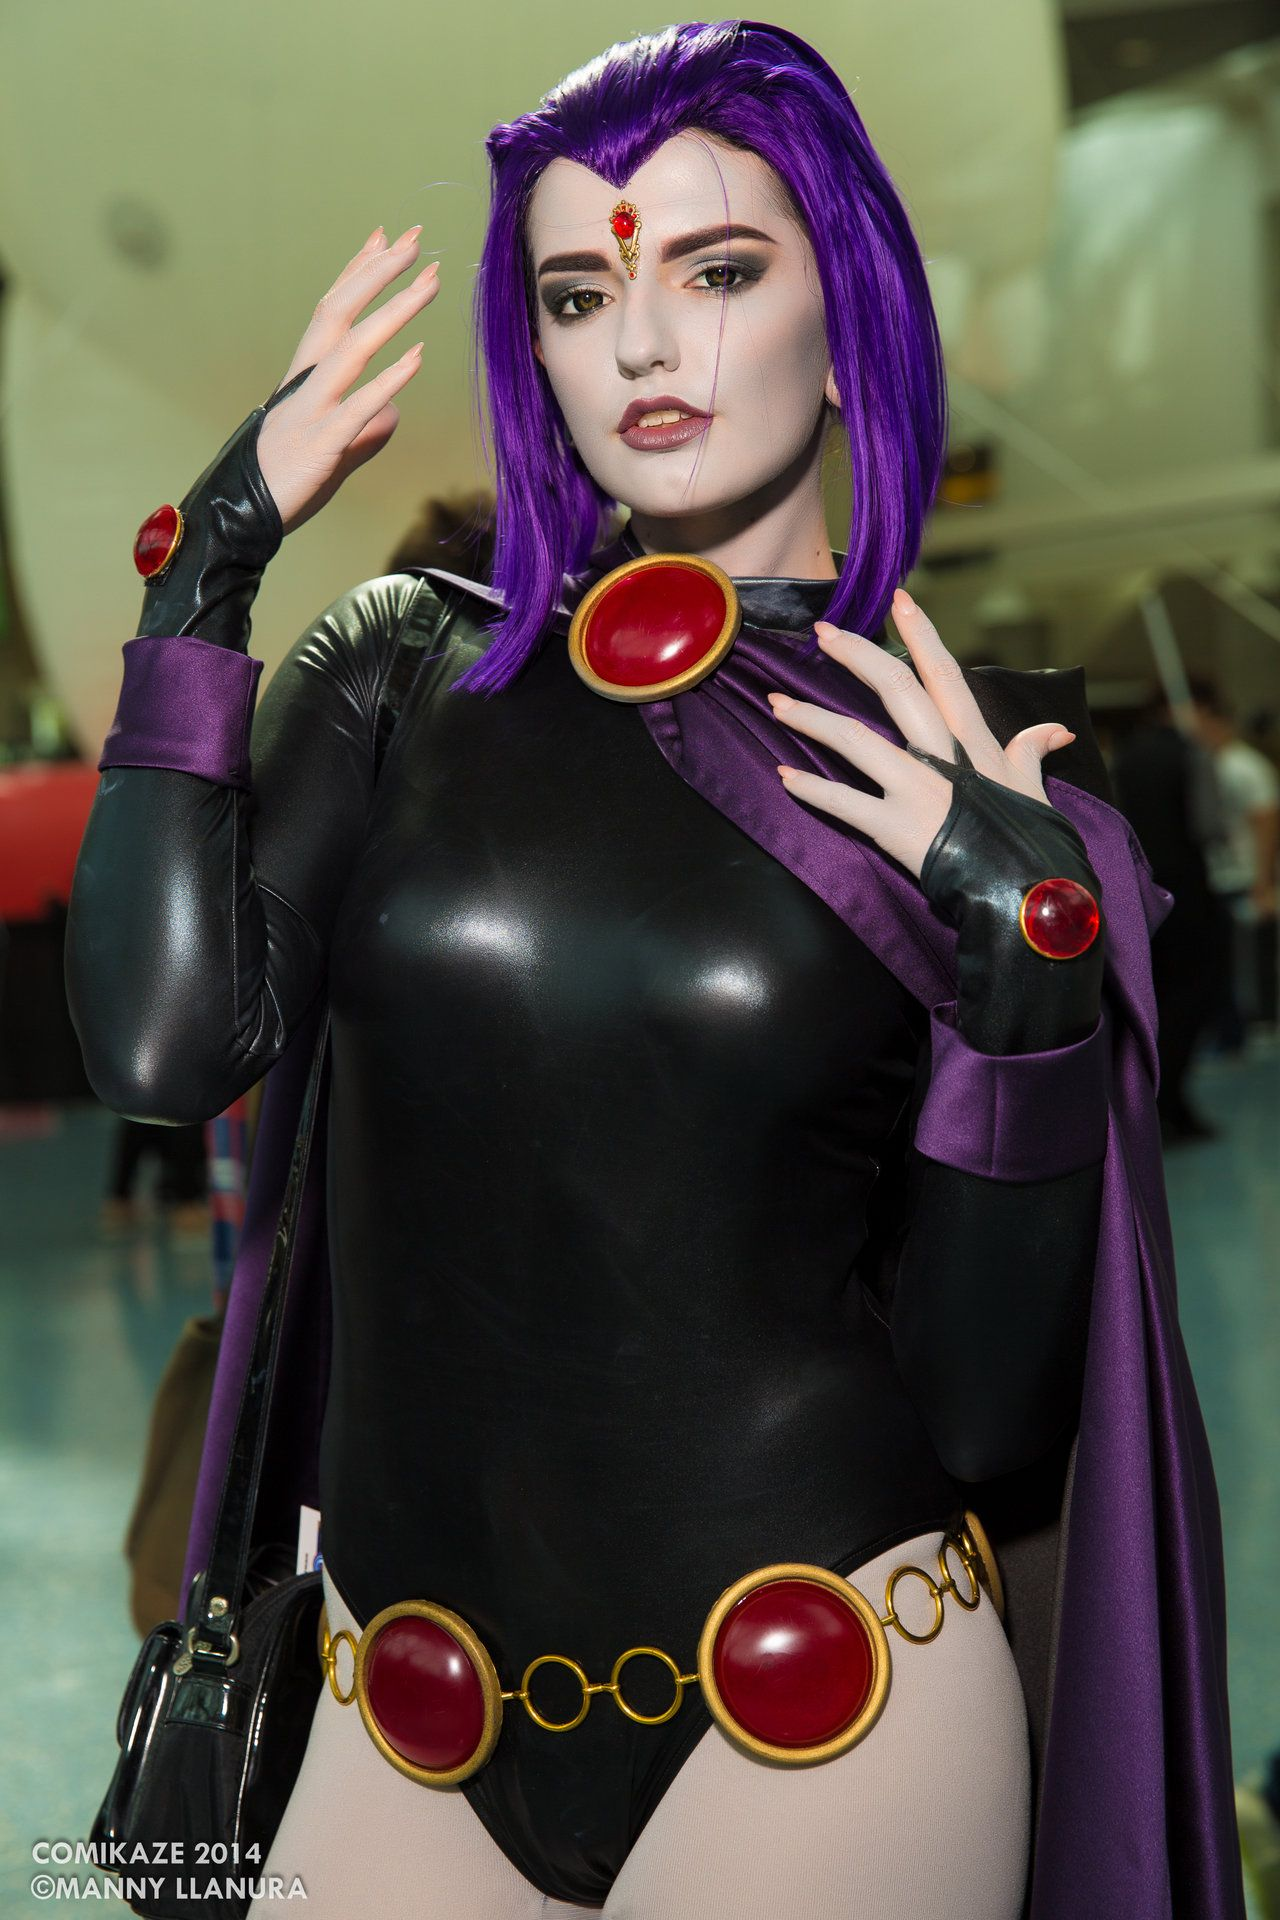 Pin On Best Comikaze 2014 Cosplay